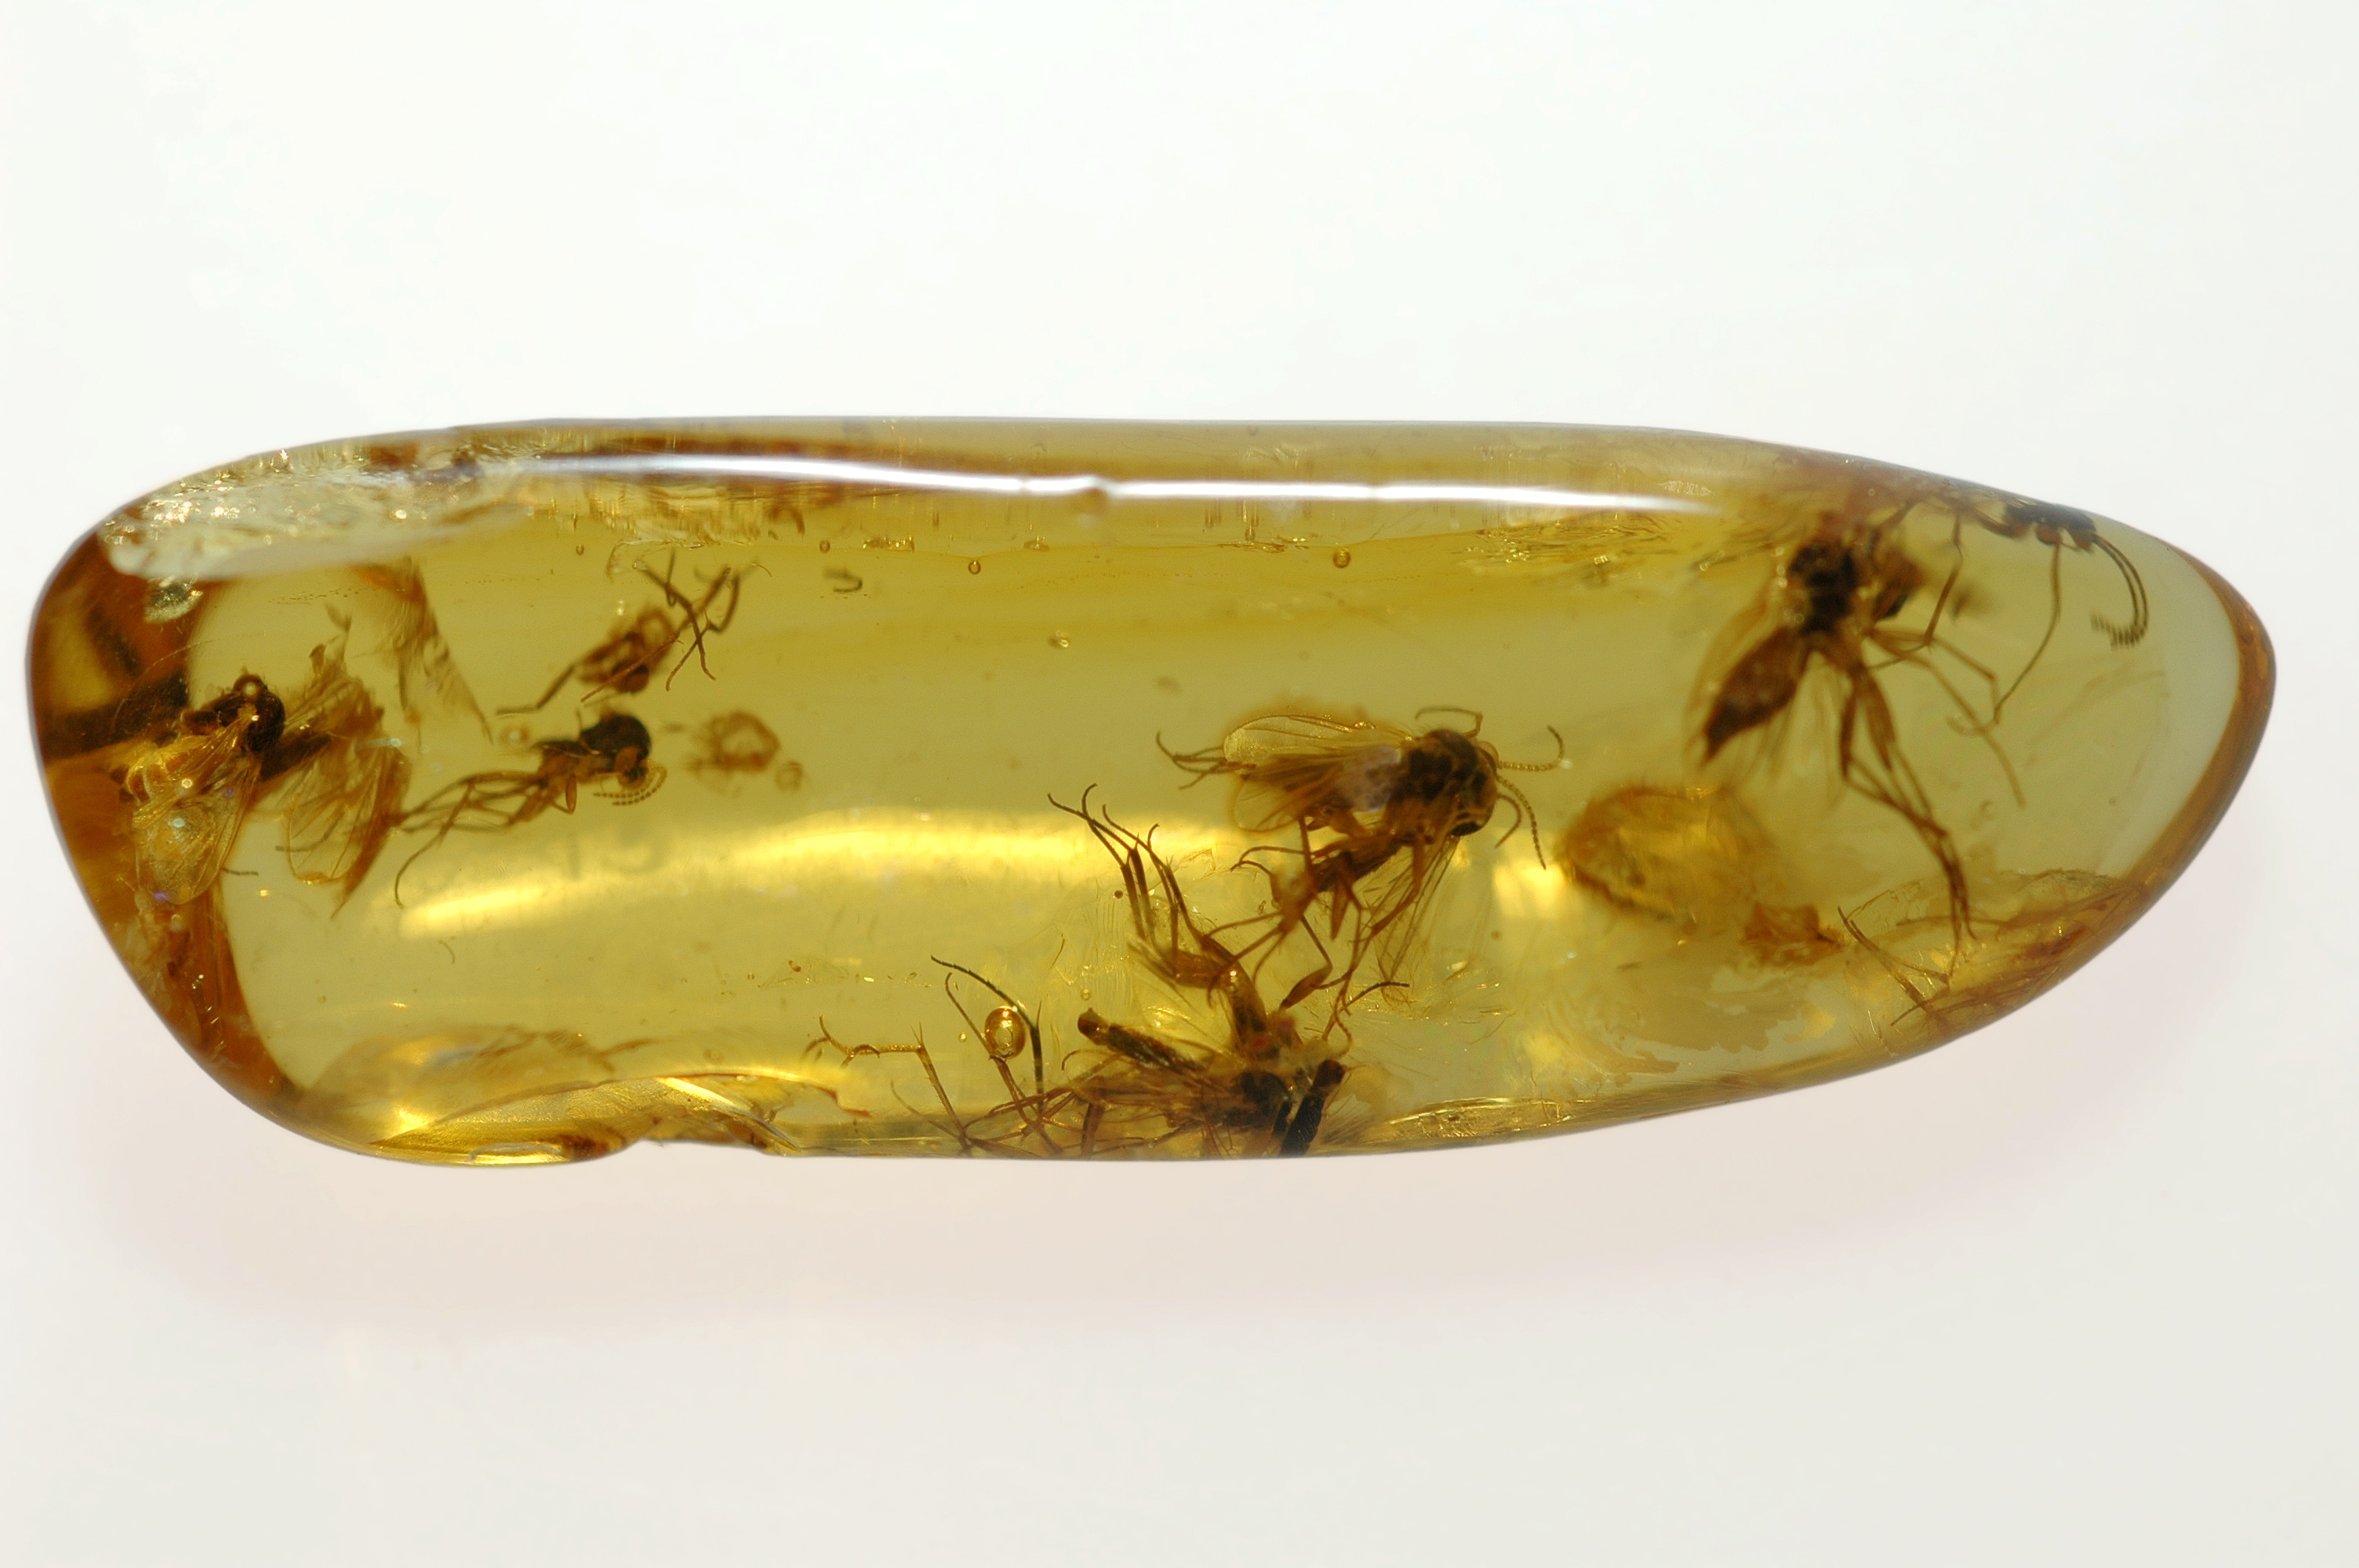 Researchers found, trapped in amber in Burma, was three fossilized male damselflies from the pre-Cretaceous Period, some 100 million years in the past.